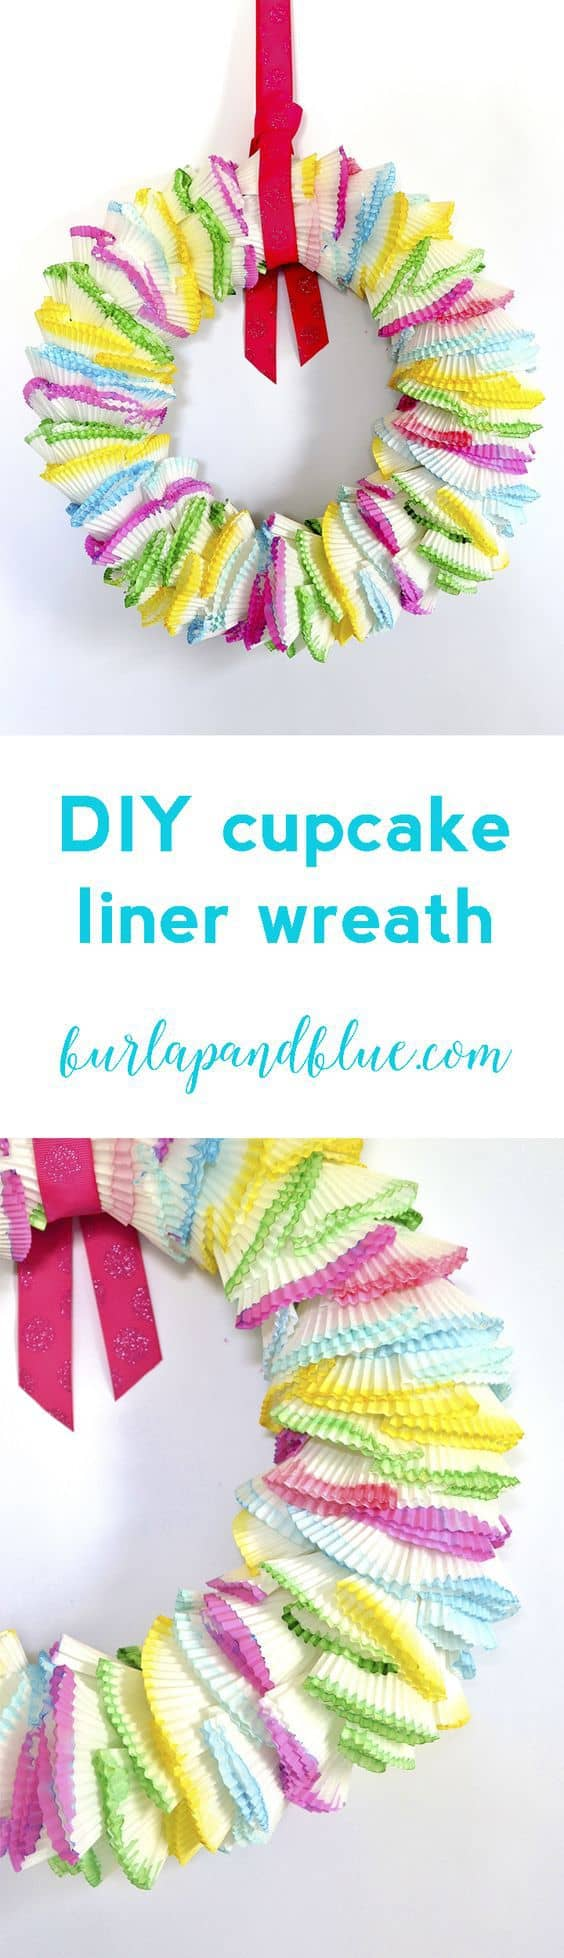 cupcake liner wreath diy